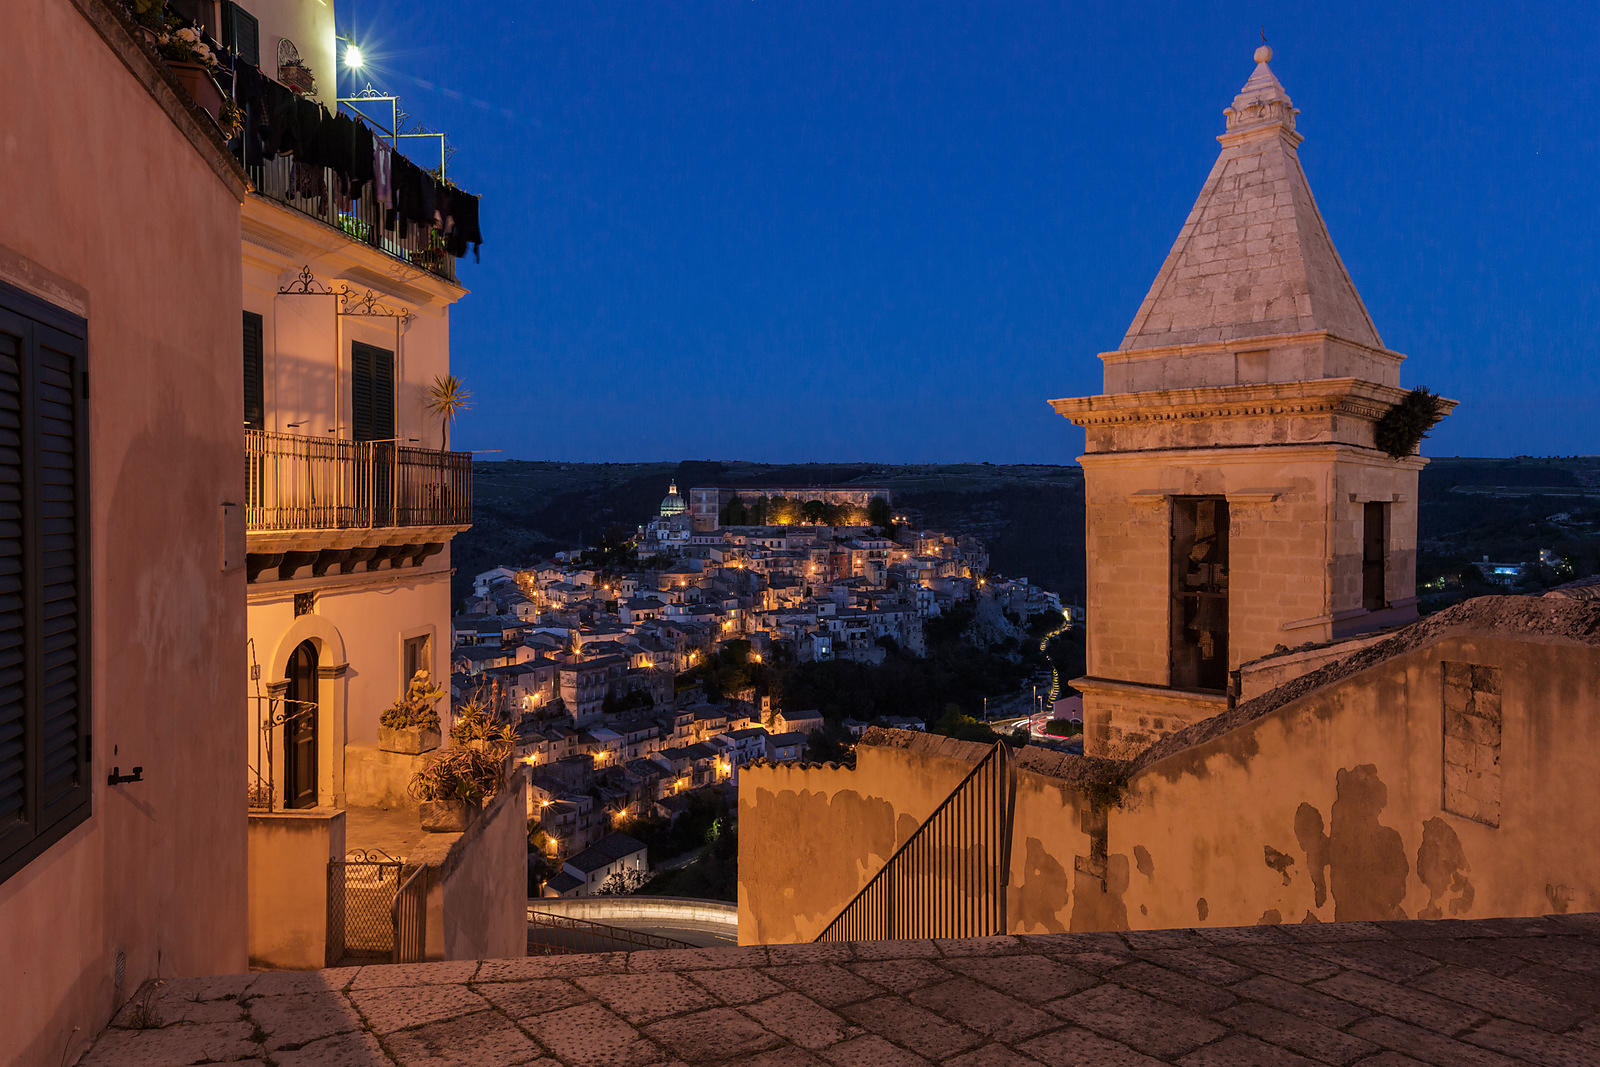 Elevated View of Ragusa Ibla from the Steps of Santa Maria delle la Scale